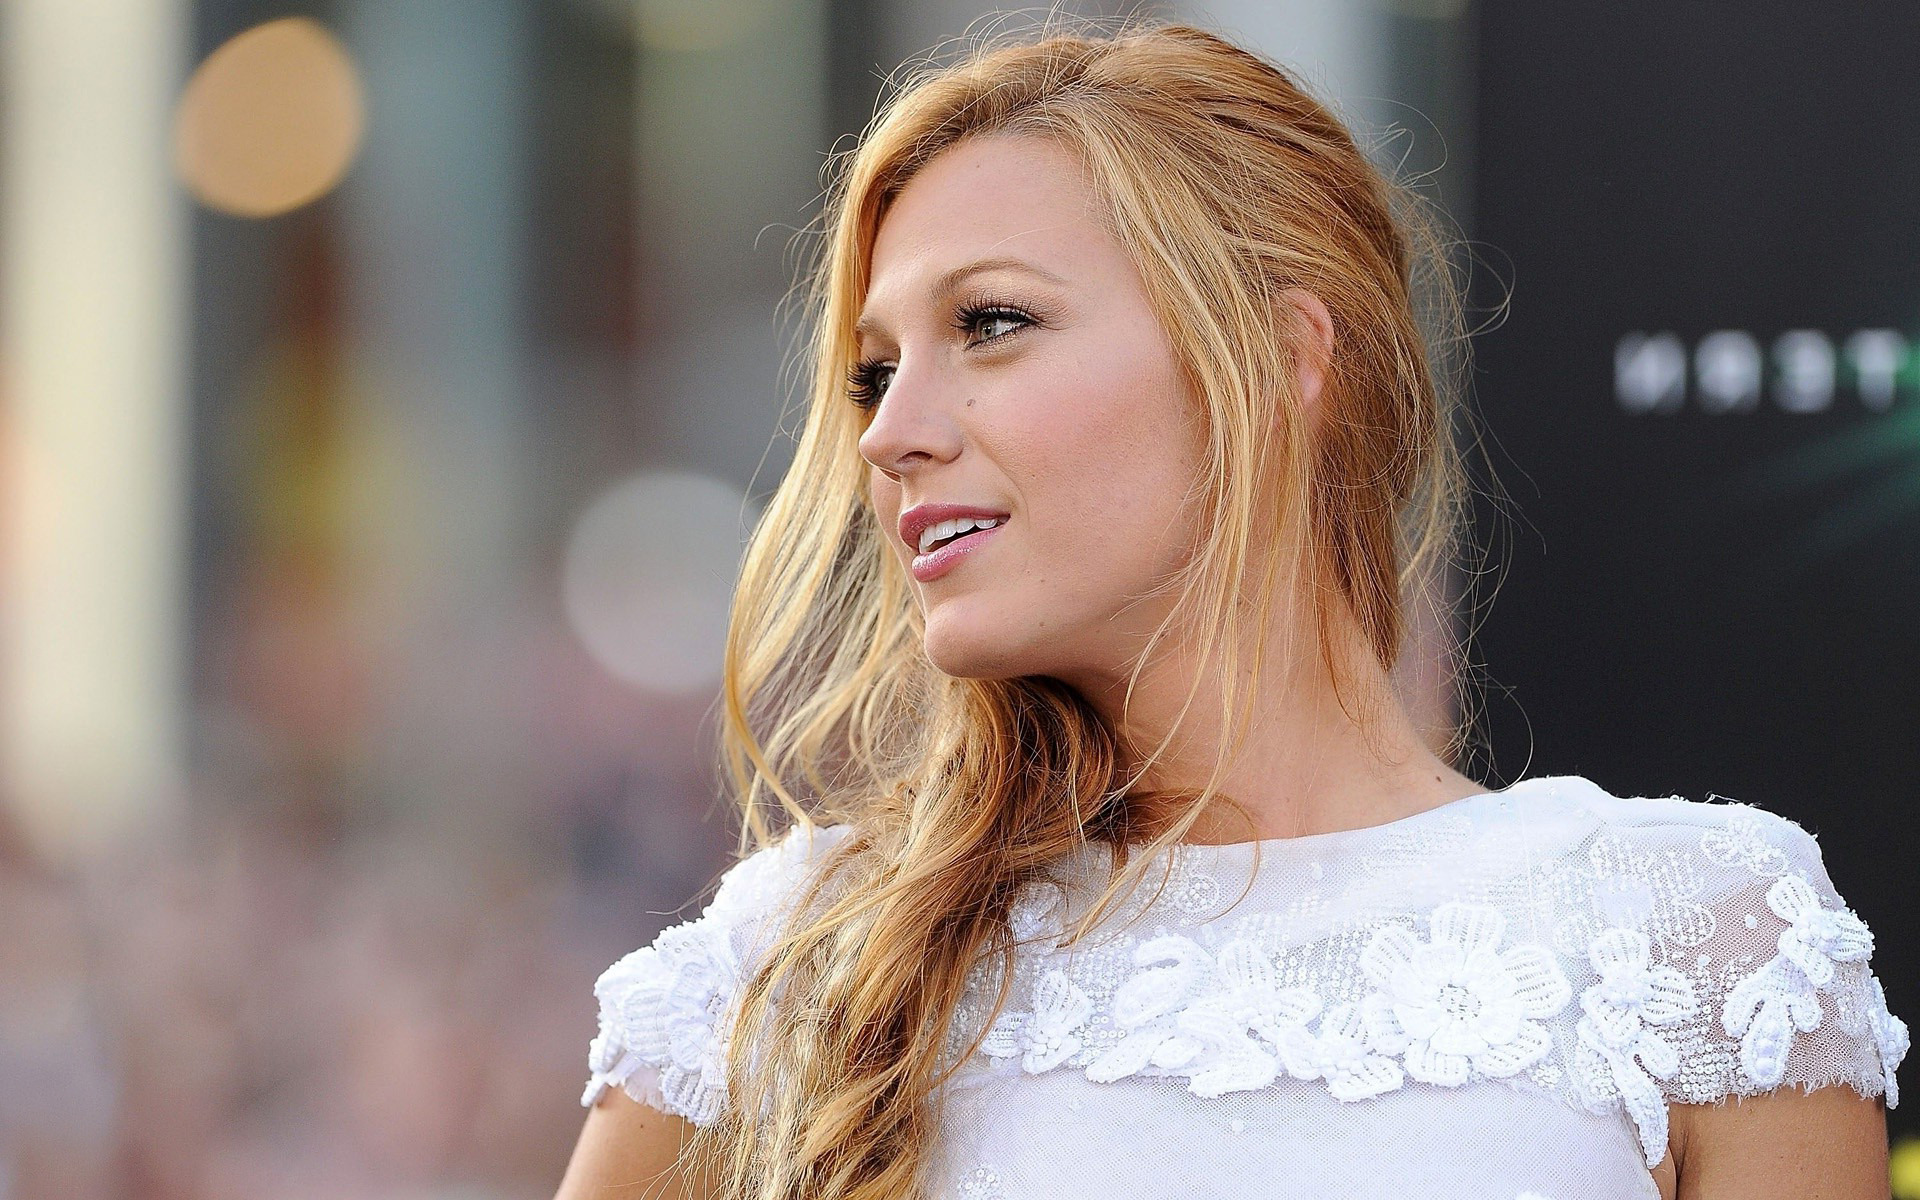 Get To Know The Gorgeous Ms. Blake Lively   Articlestone